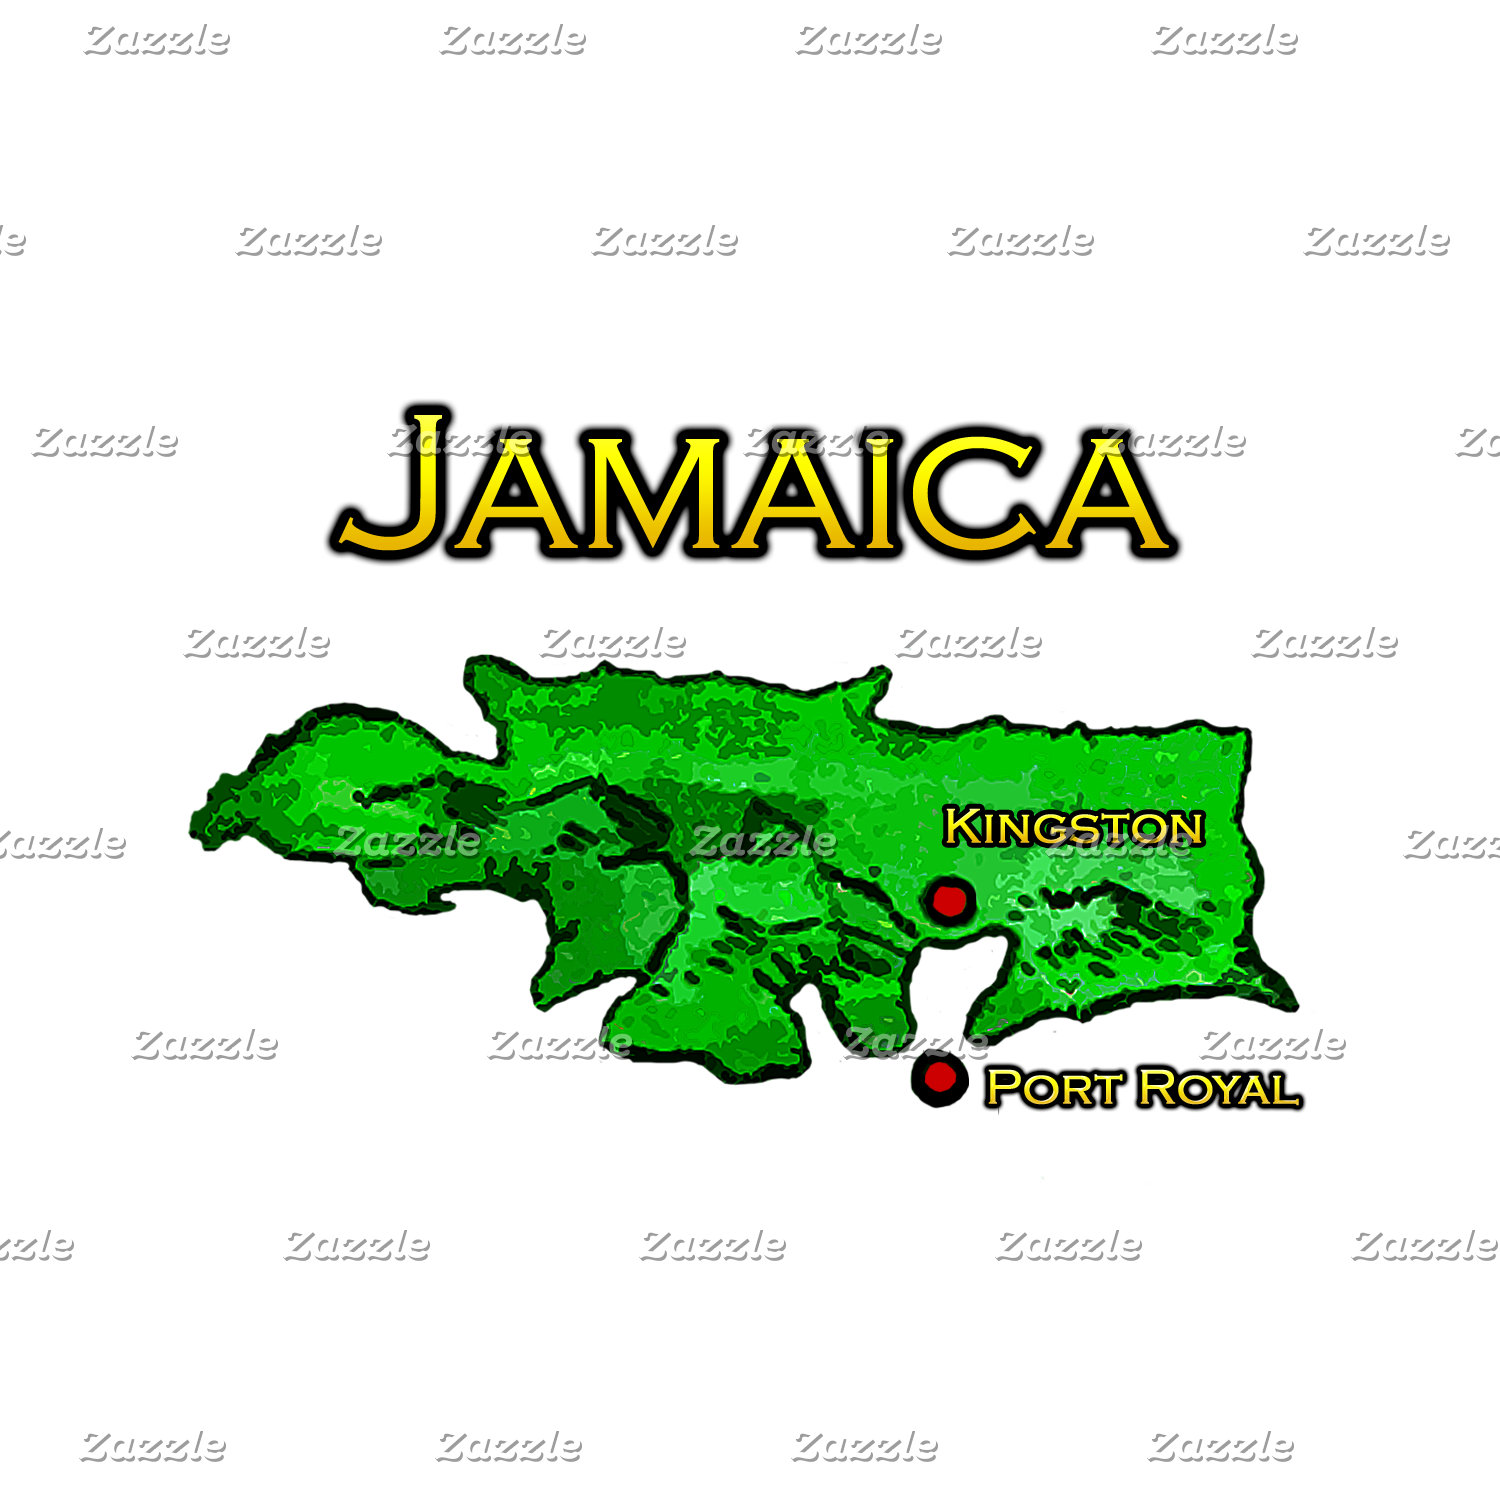 Caribbean - West Indies